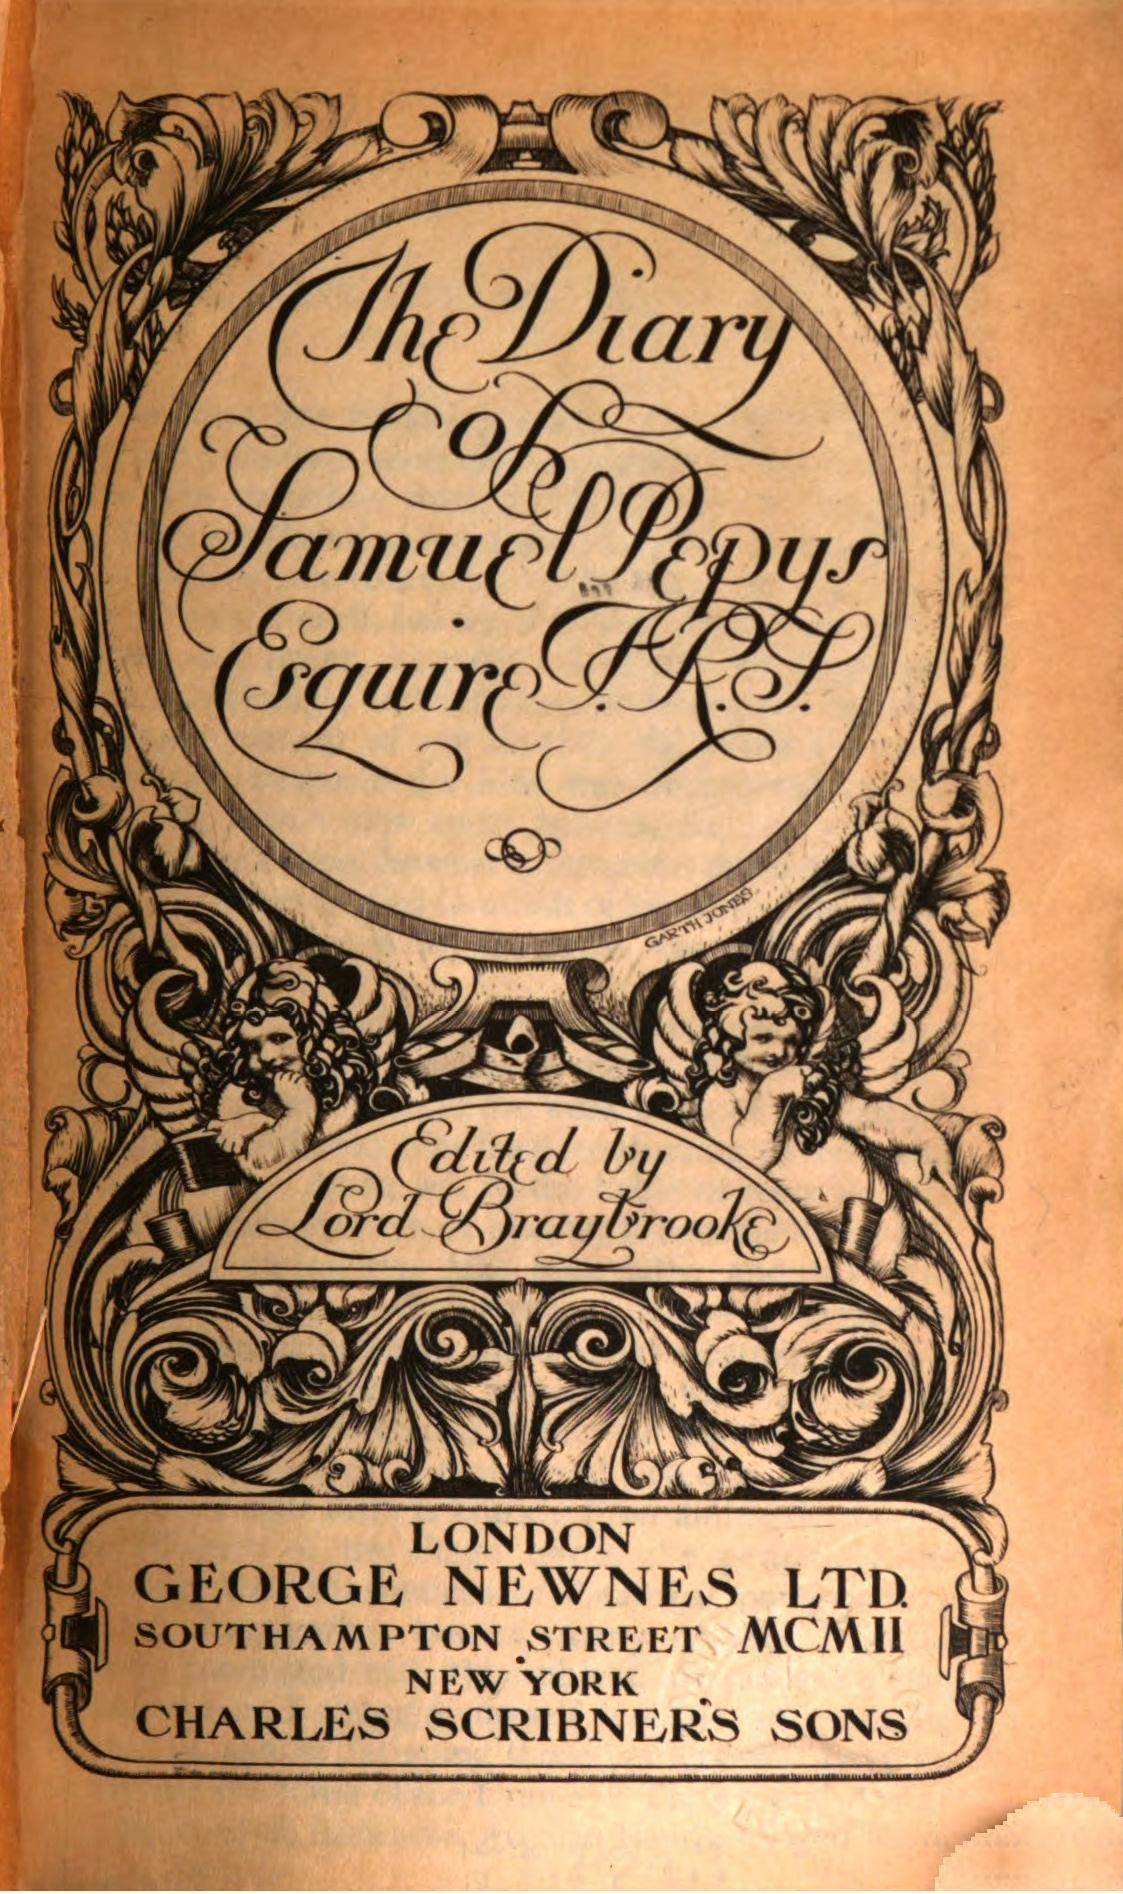 The Diary of Samuel Pepys - A Leisurely Daily Reading, Join as You ...